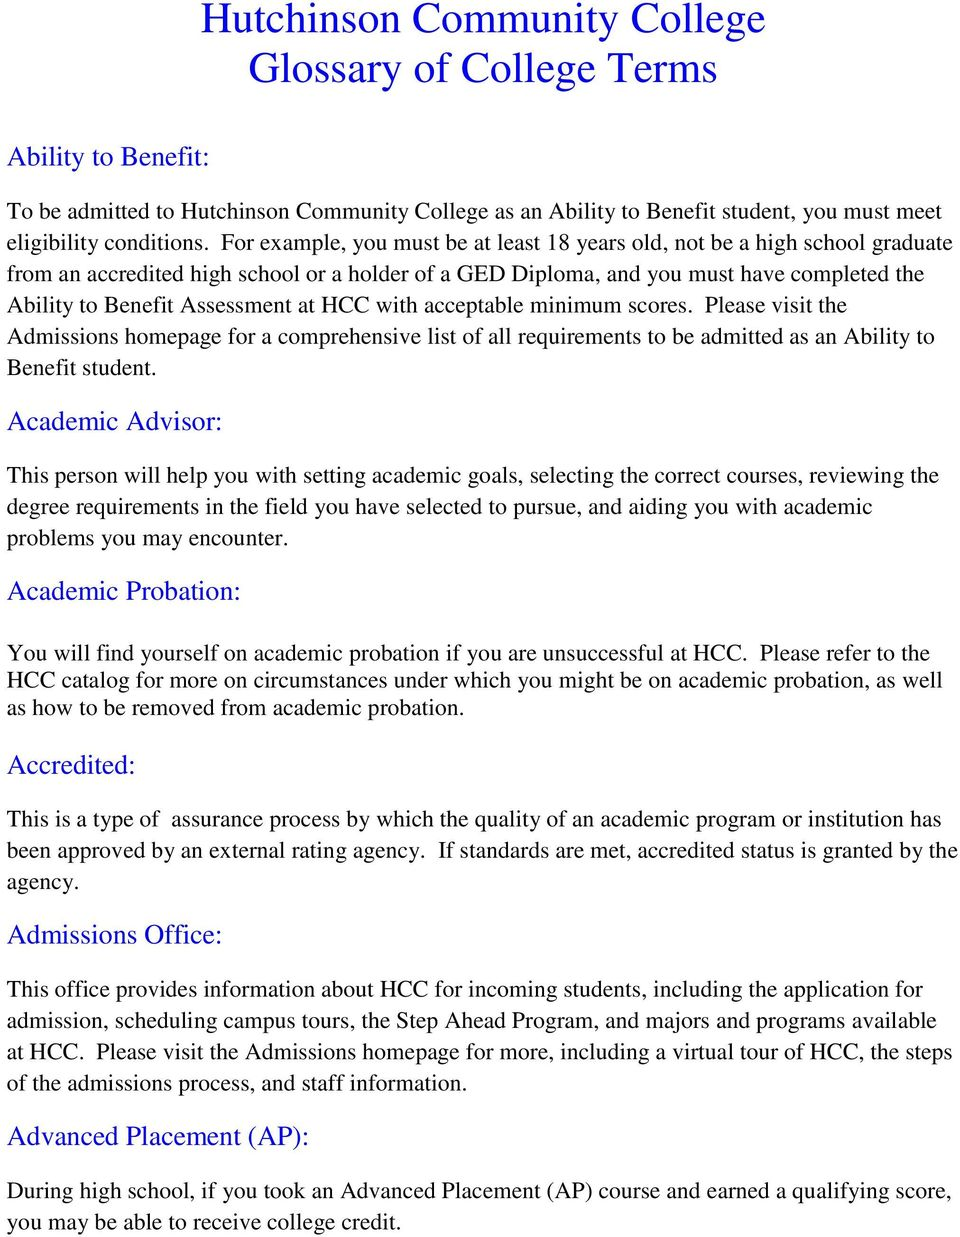 Assessment at HCC with acceptable minimum scores. Please visit the Admissions homepage for a comprehensive list of all requirements to be admitted as an Ability to Benefit student.